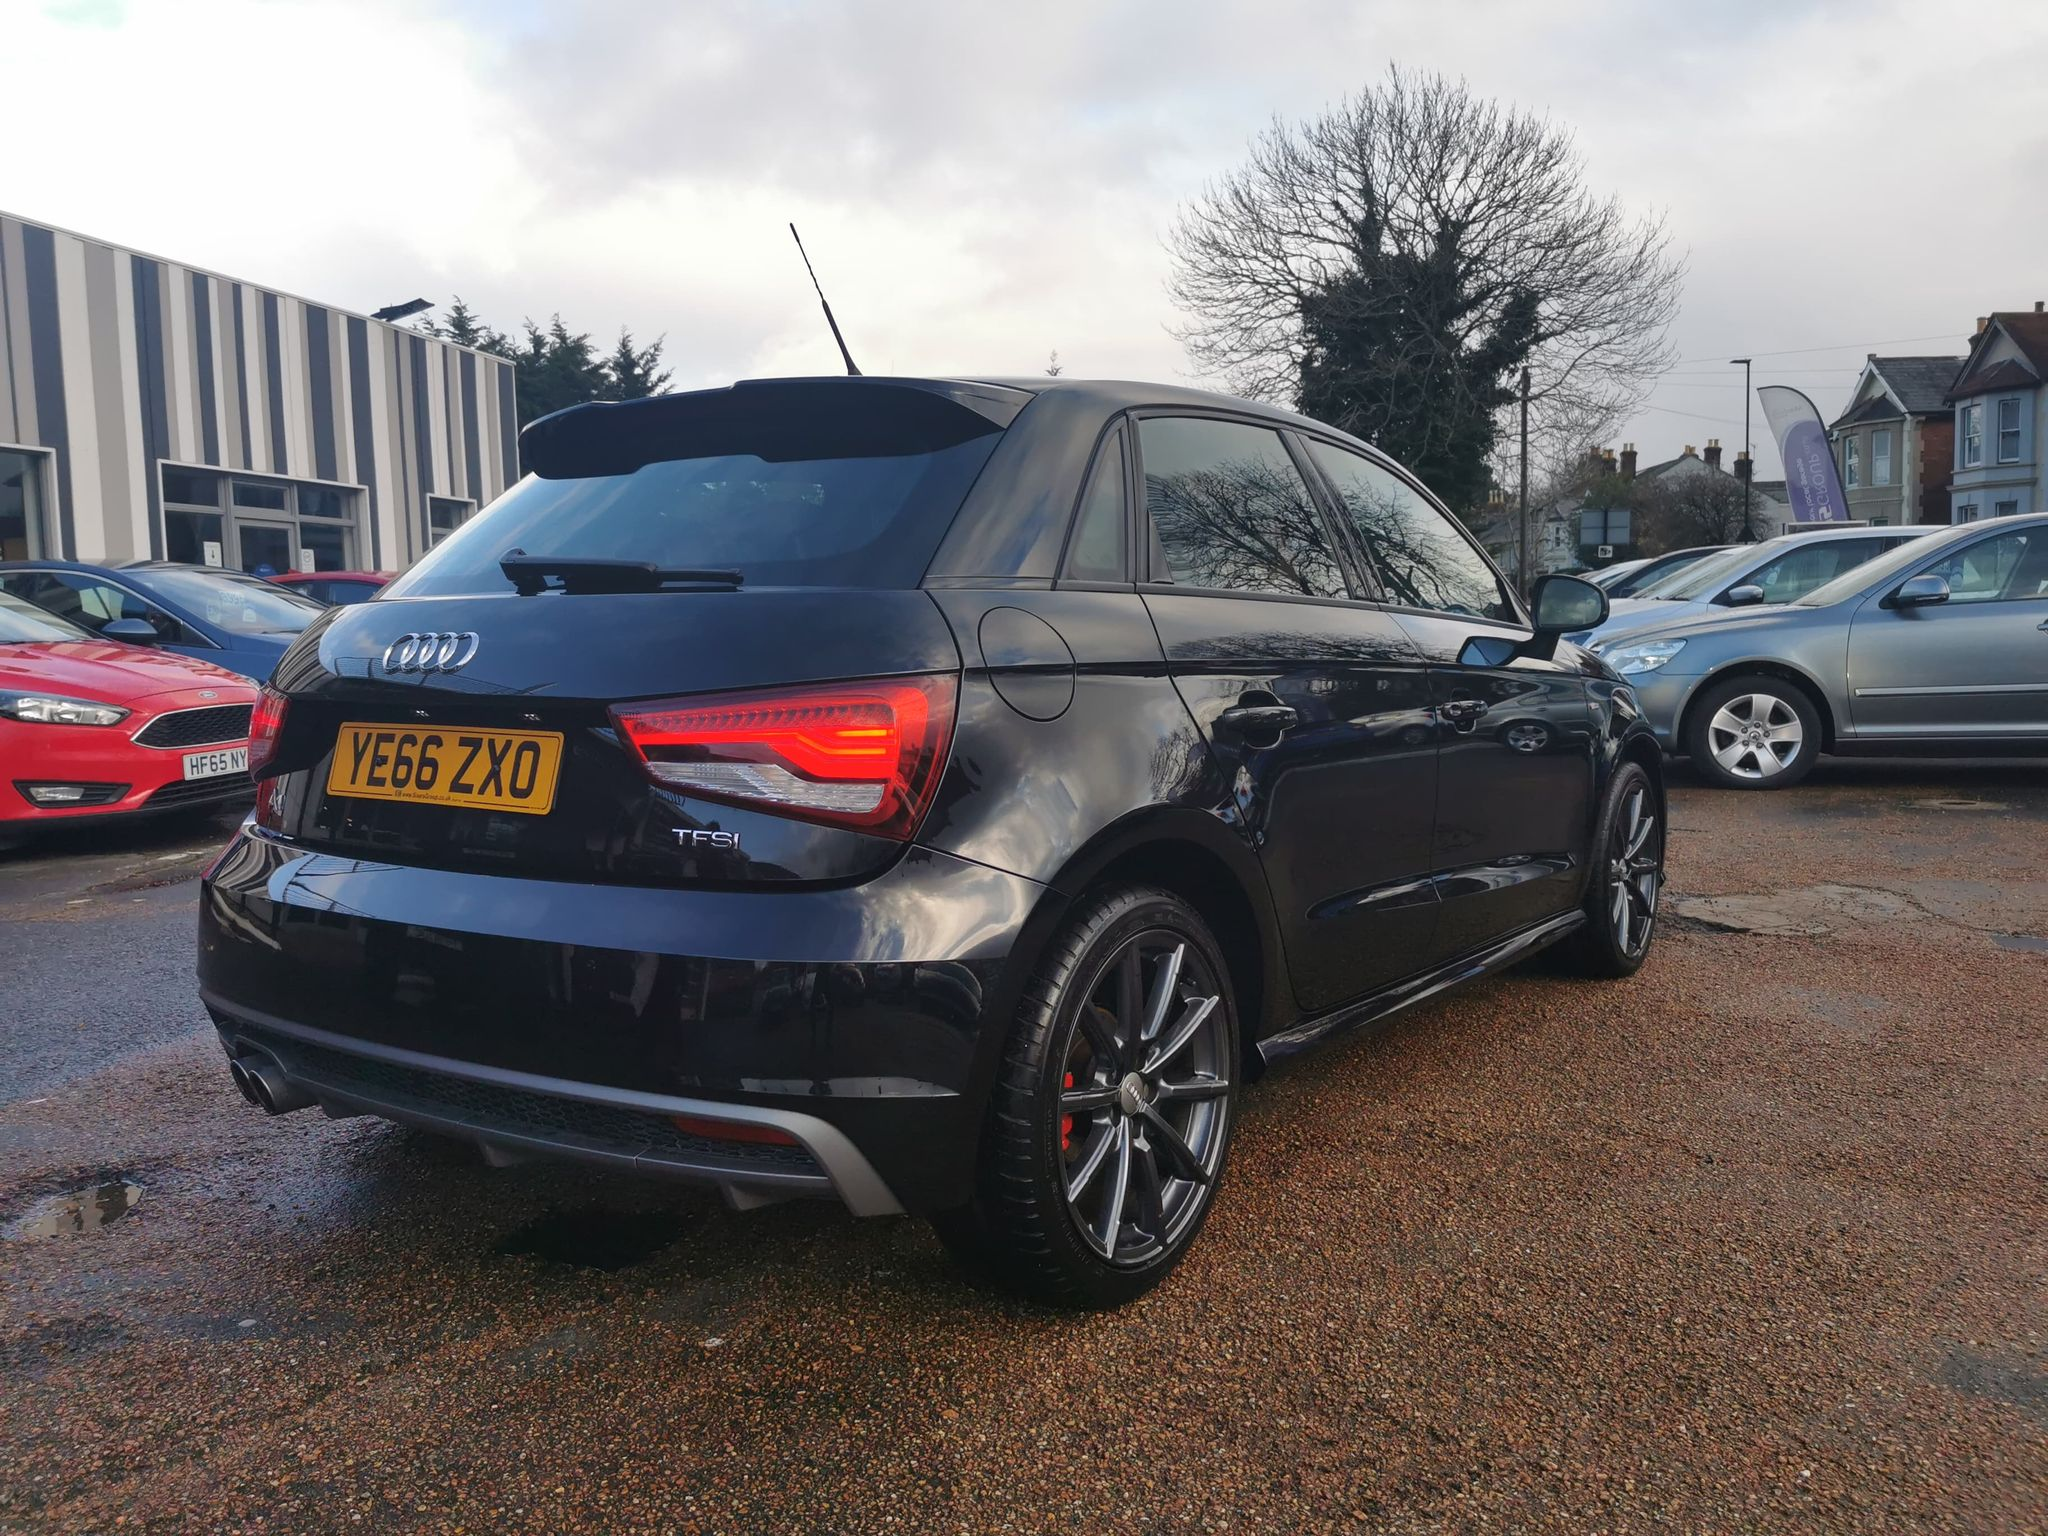 Car For Sale Audi A1 - YE66ZXO Sixers Group Image #8